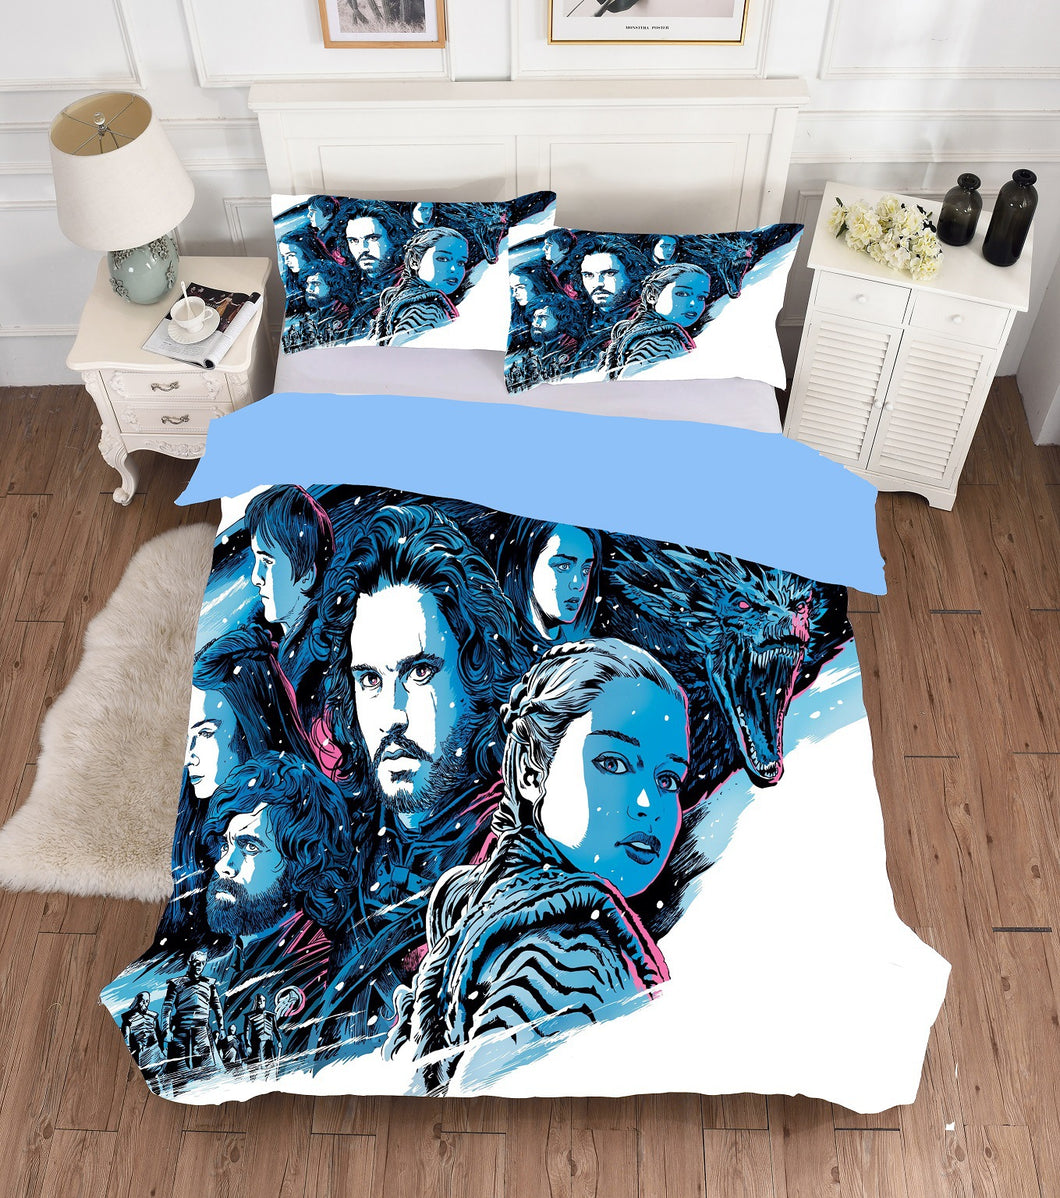 Game of Thrones Bedding Set Duvet Cover Set Bedroom Set Bedlinen 3D Printing